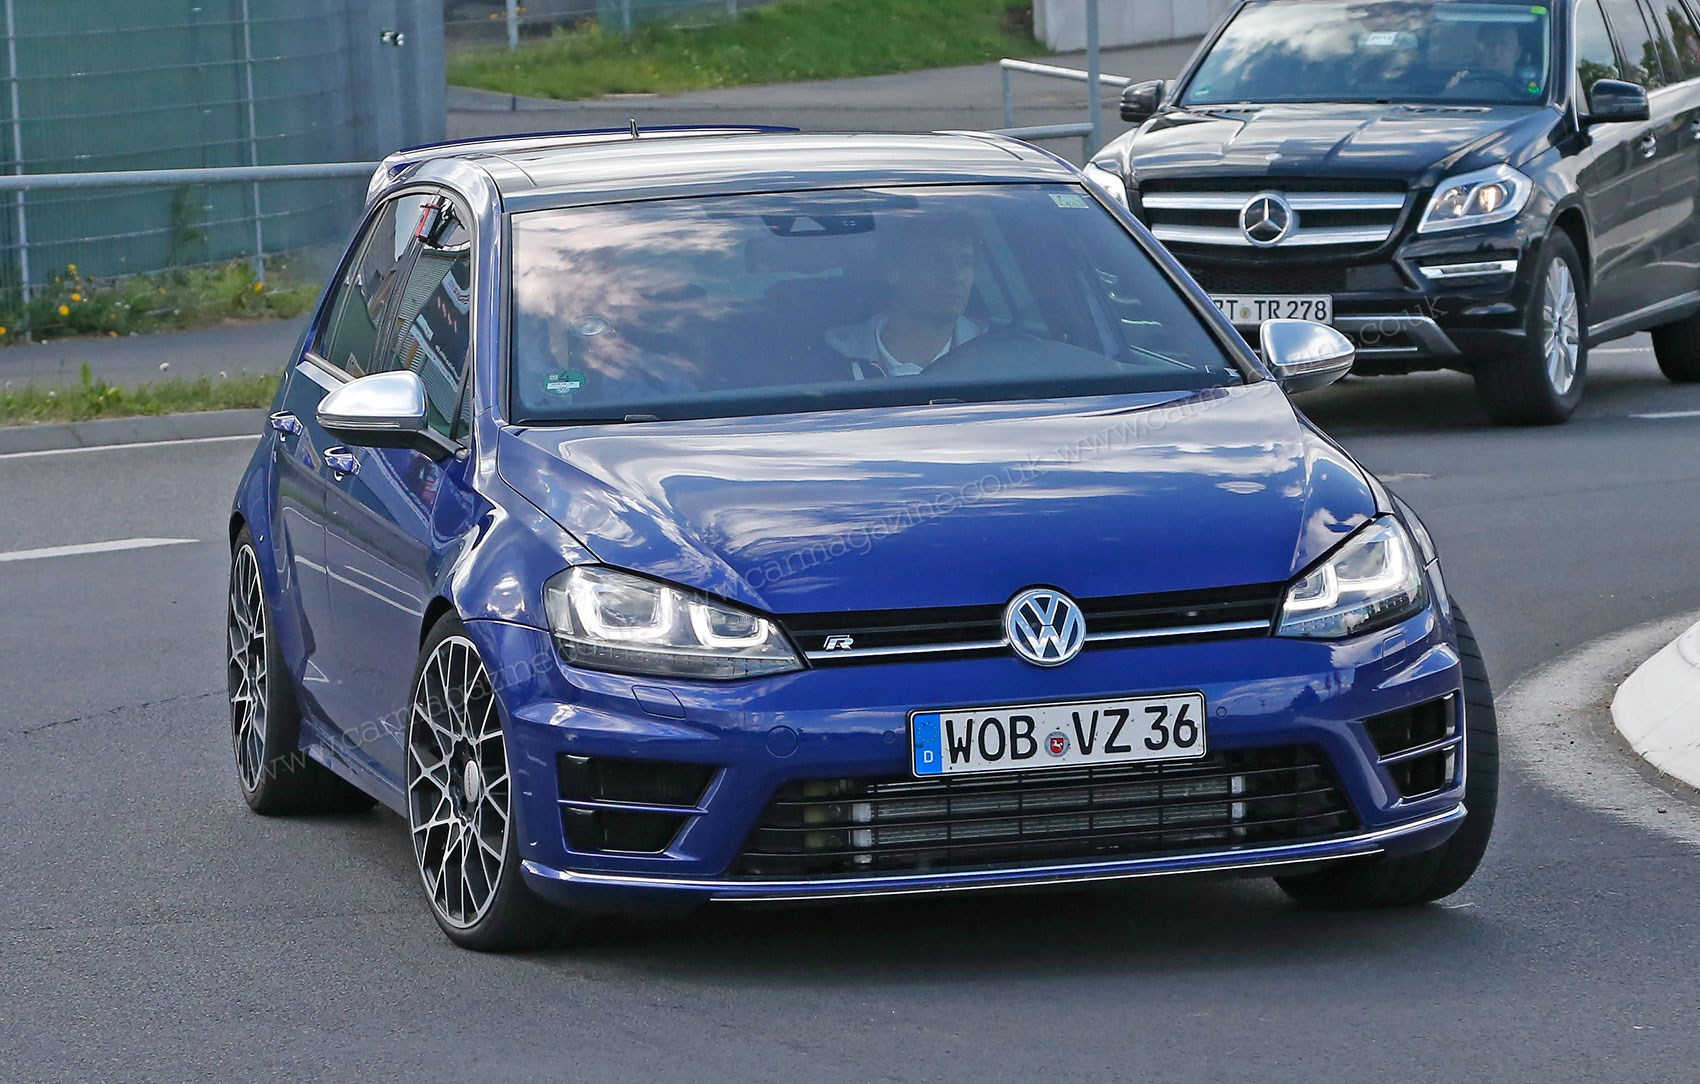 vw golf r420 spy photos best look yet at 2016 39 s super golf gti by car magazine. Black Bedroom Furniture Sets. Home Design Ideas